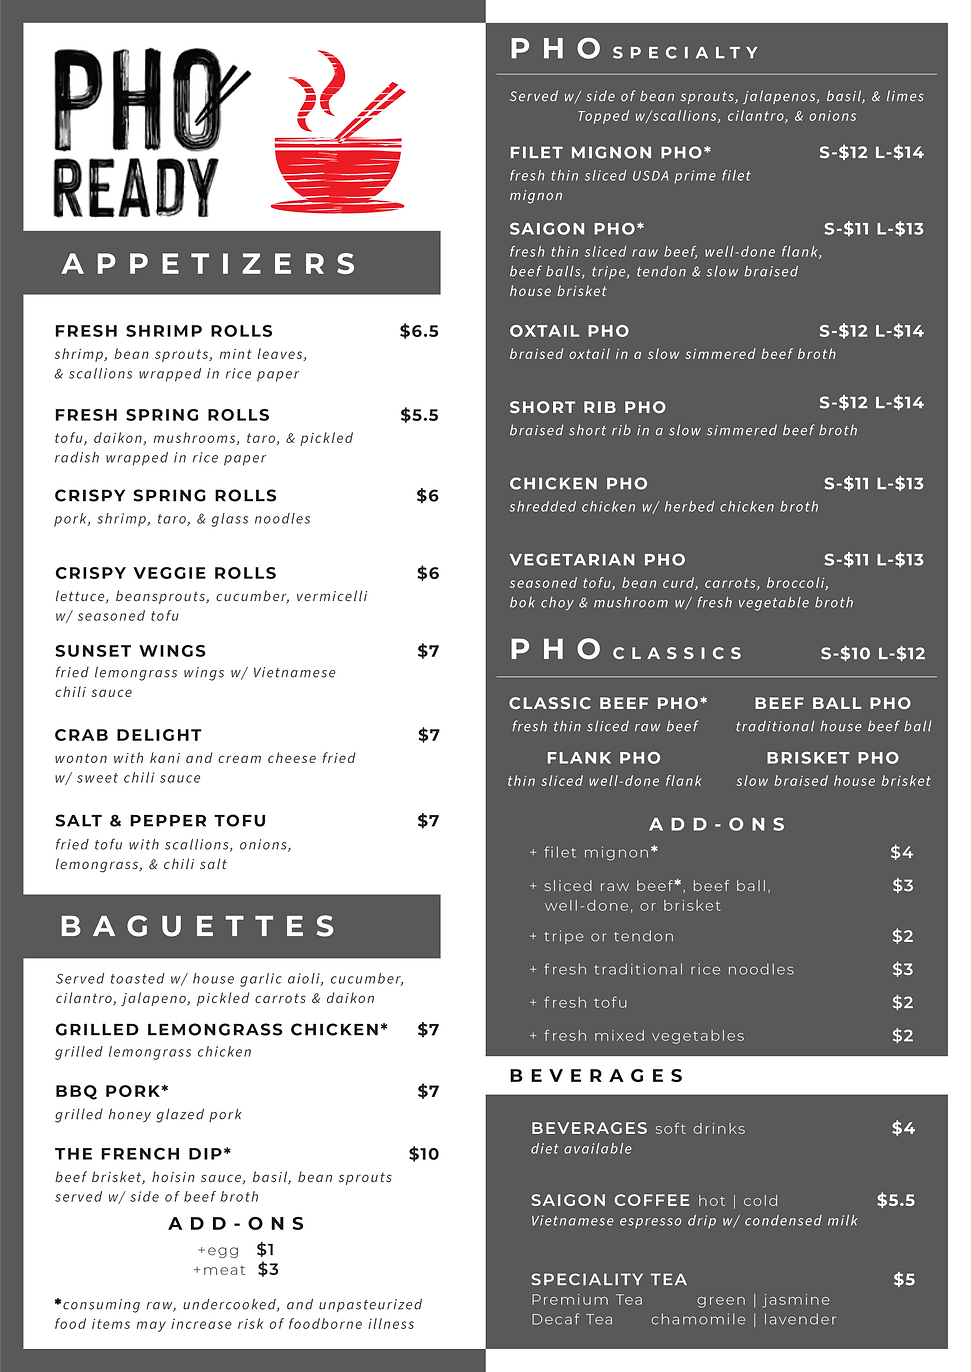 Pho-Ready-Menu-Final-1.png